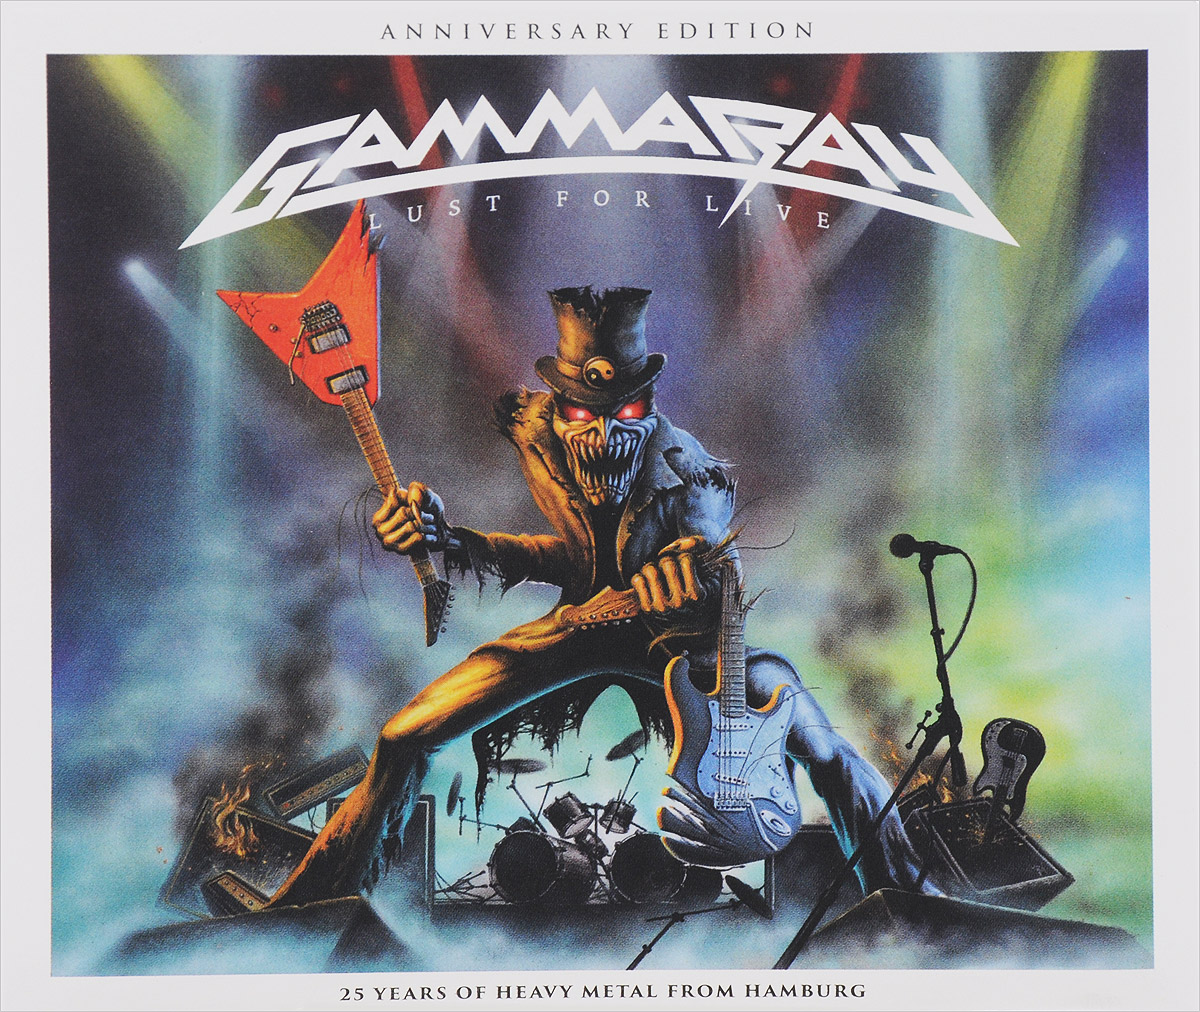 Gamma Ray Gamma Ray. Lust For Live. Anniversary Edition francis rossi live from st luke s london blu ray